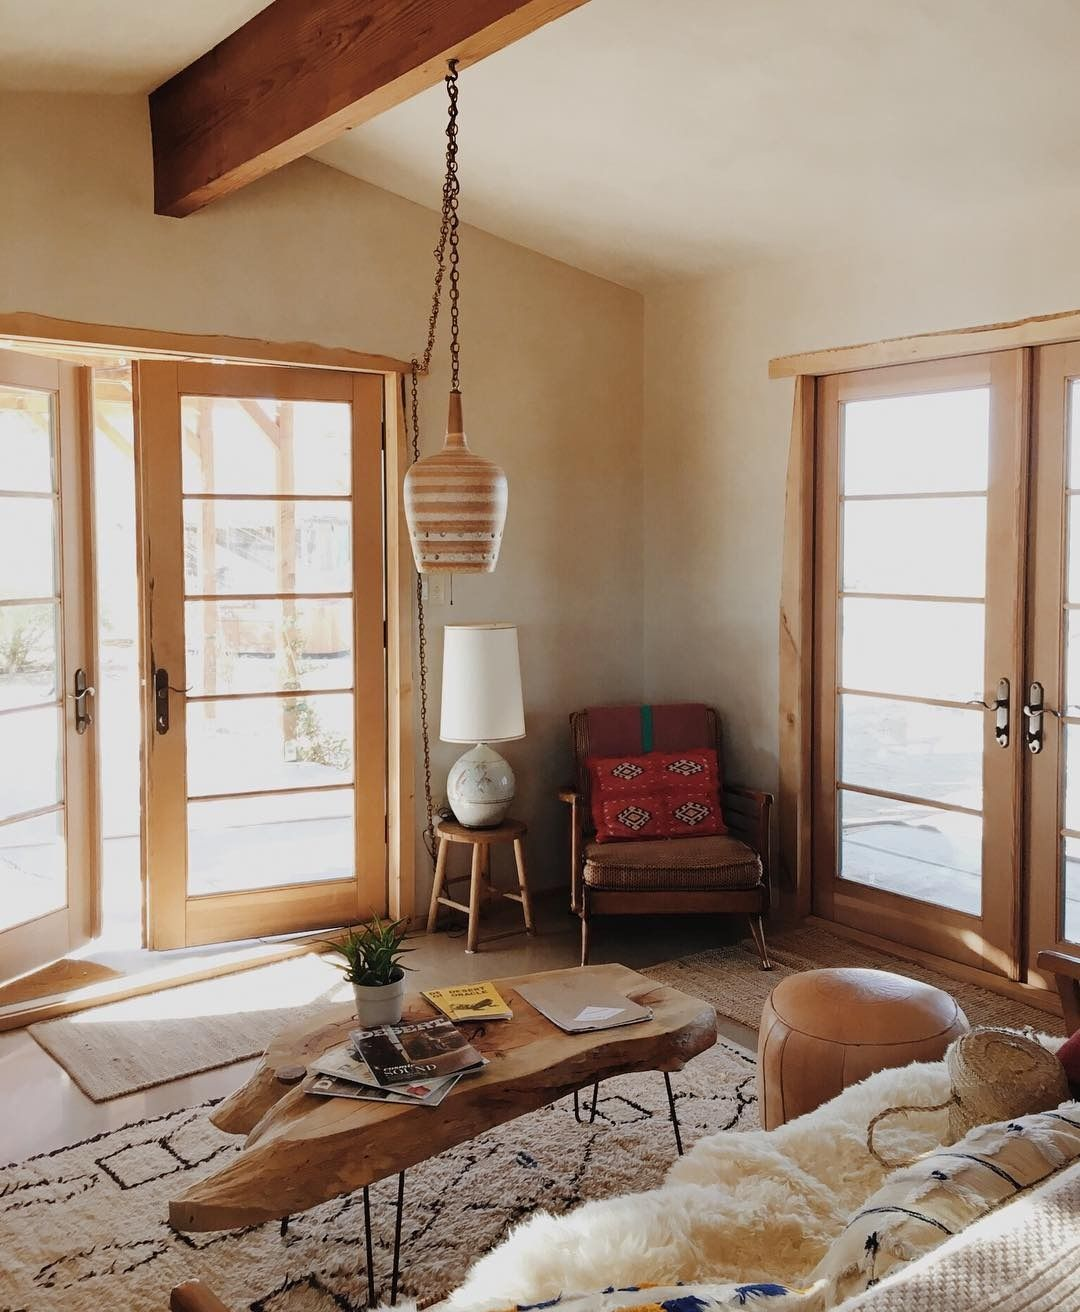 Room inspo pinterest softcoffee beautiful home interiorscountry also instagram rh